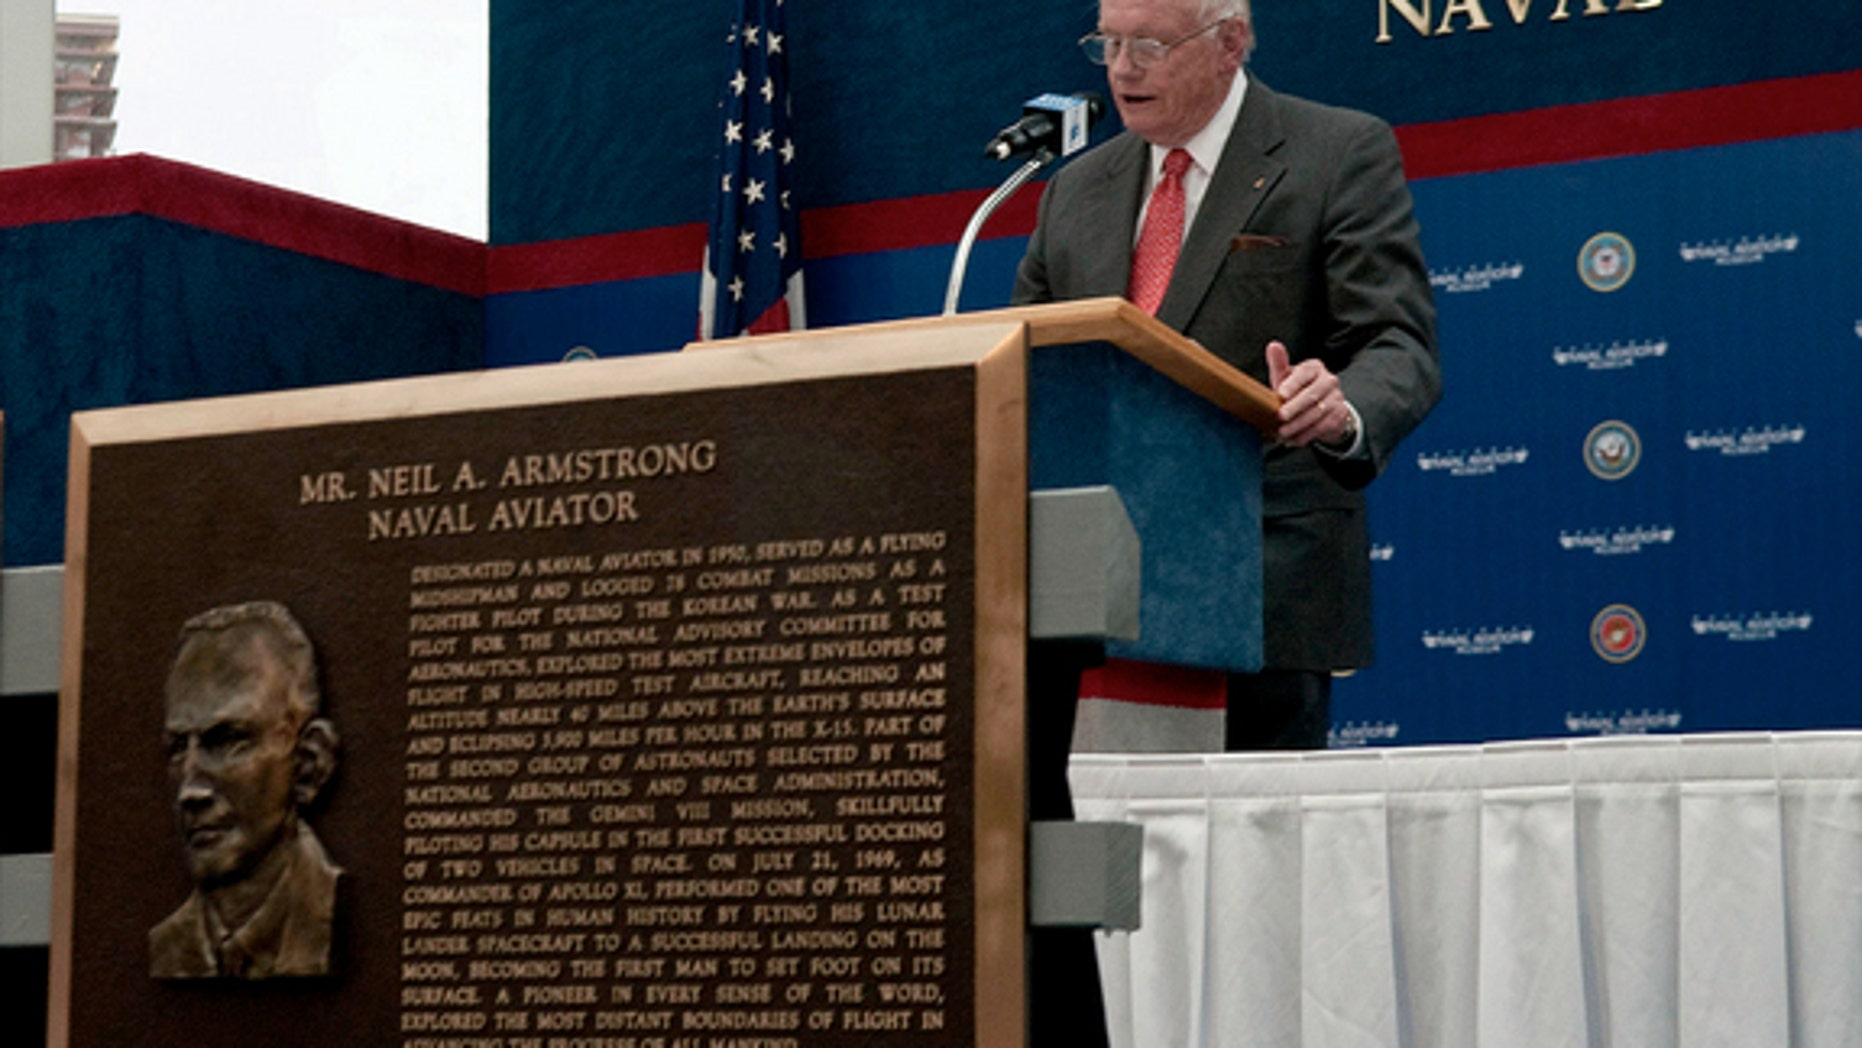 Neil Armstrong gives an acceptance speech after being inducted in 2010 into the Naval Aviation Hall of Honor at the National Naval Aviation Museum in Pensacola, Fla. The Navy will honor him with a burial sea.